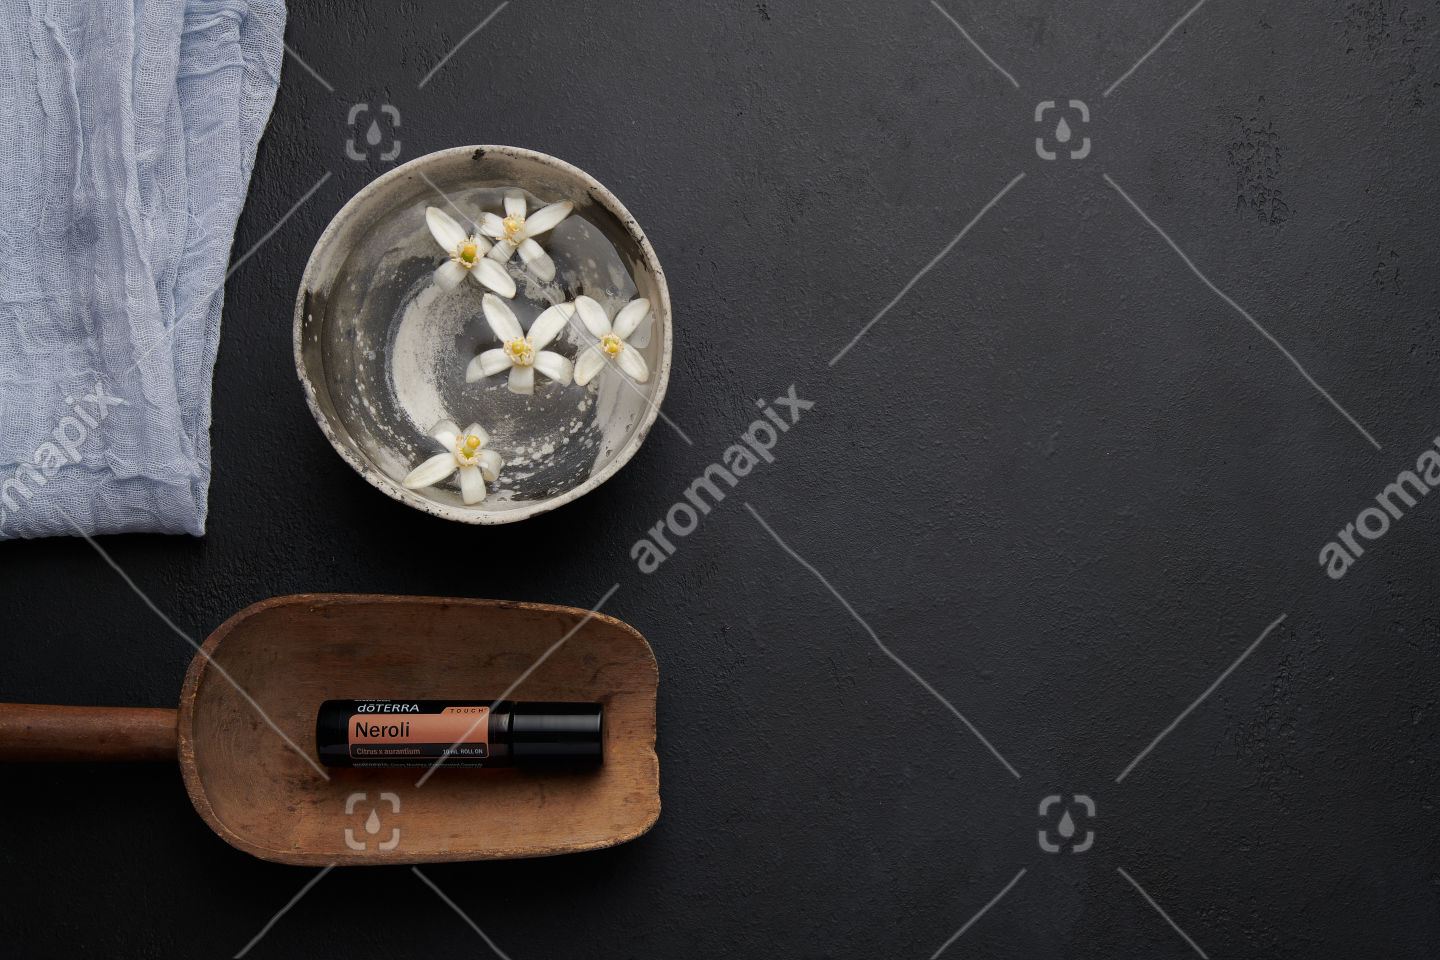 doTERRA Neroli Touch in a wooden scoop with orange blosson on black